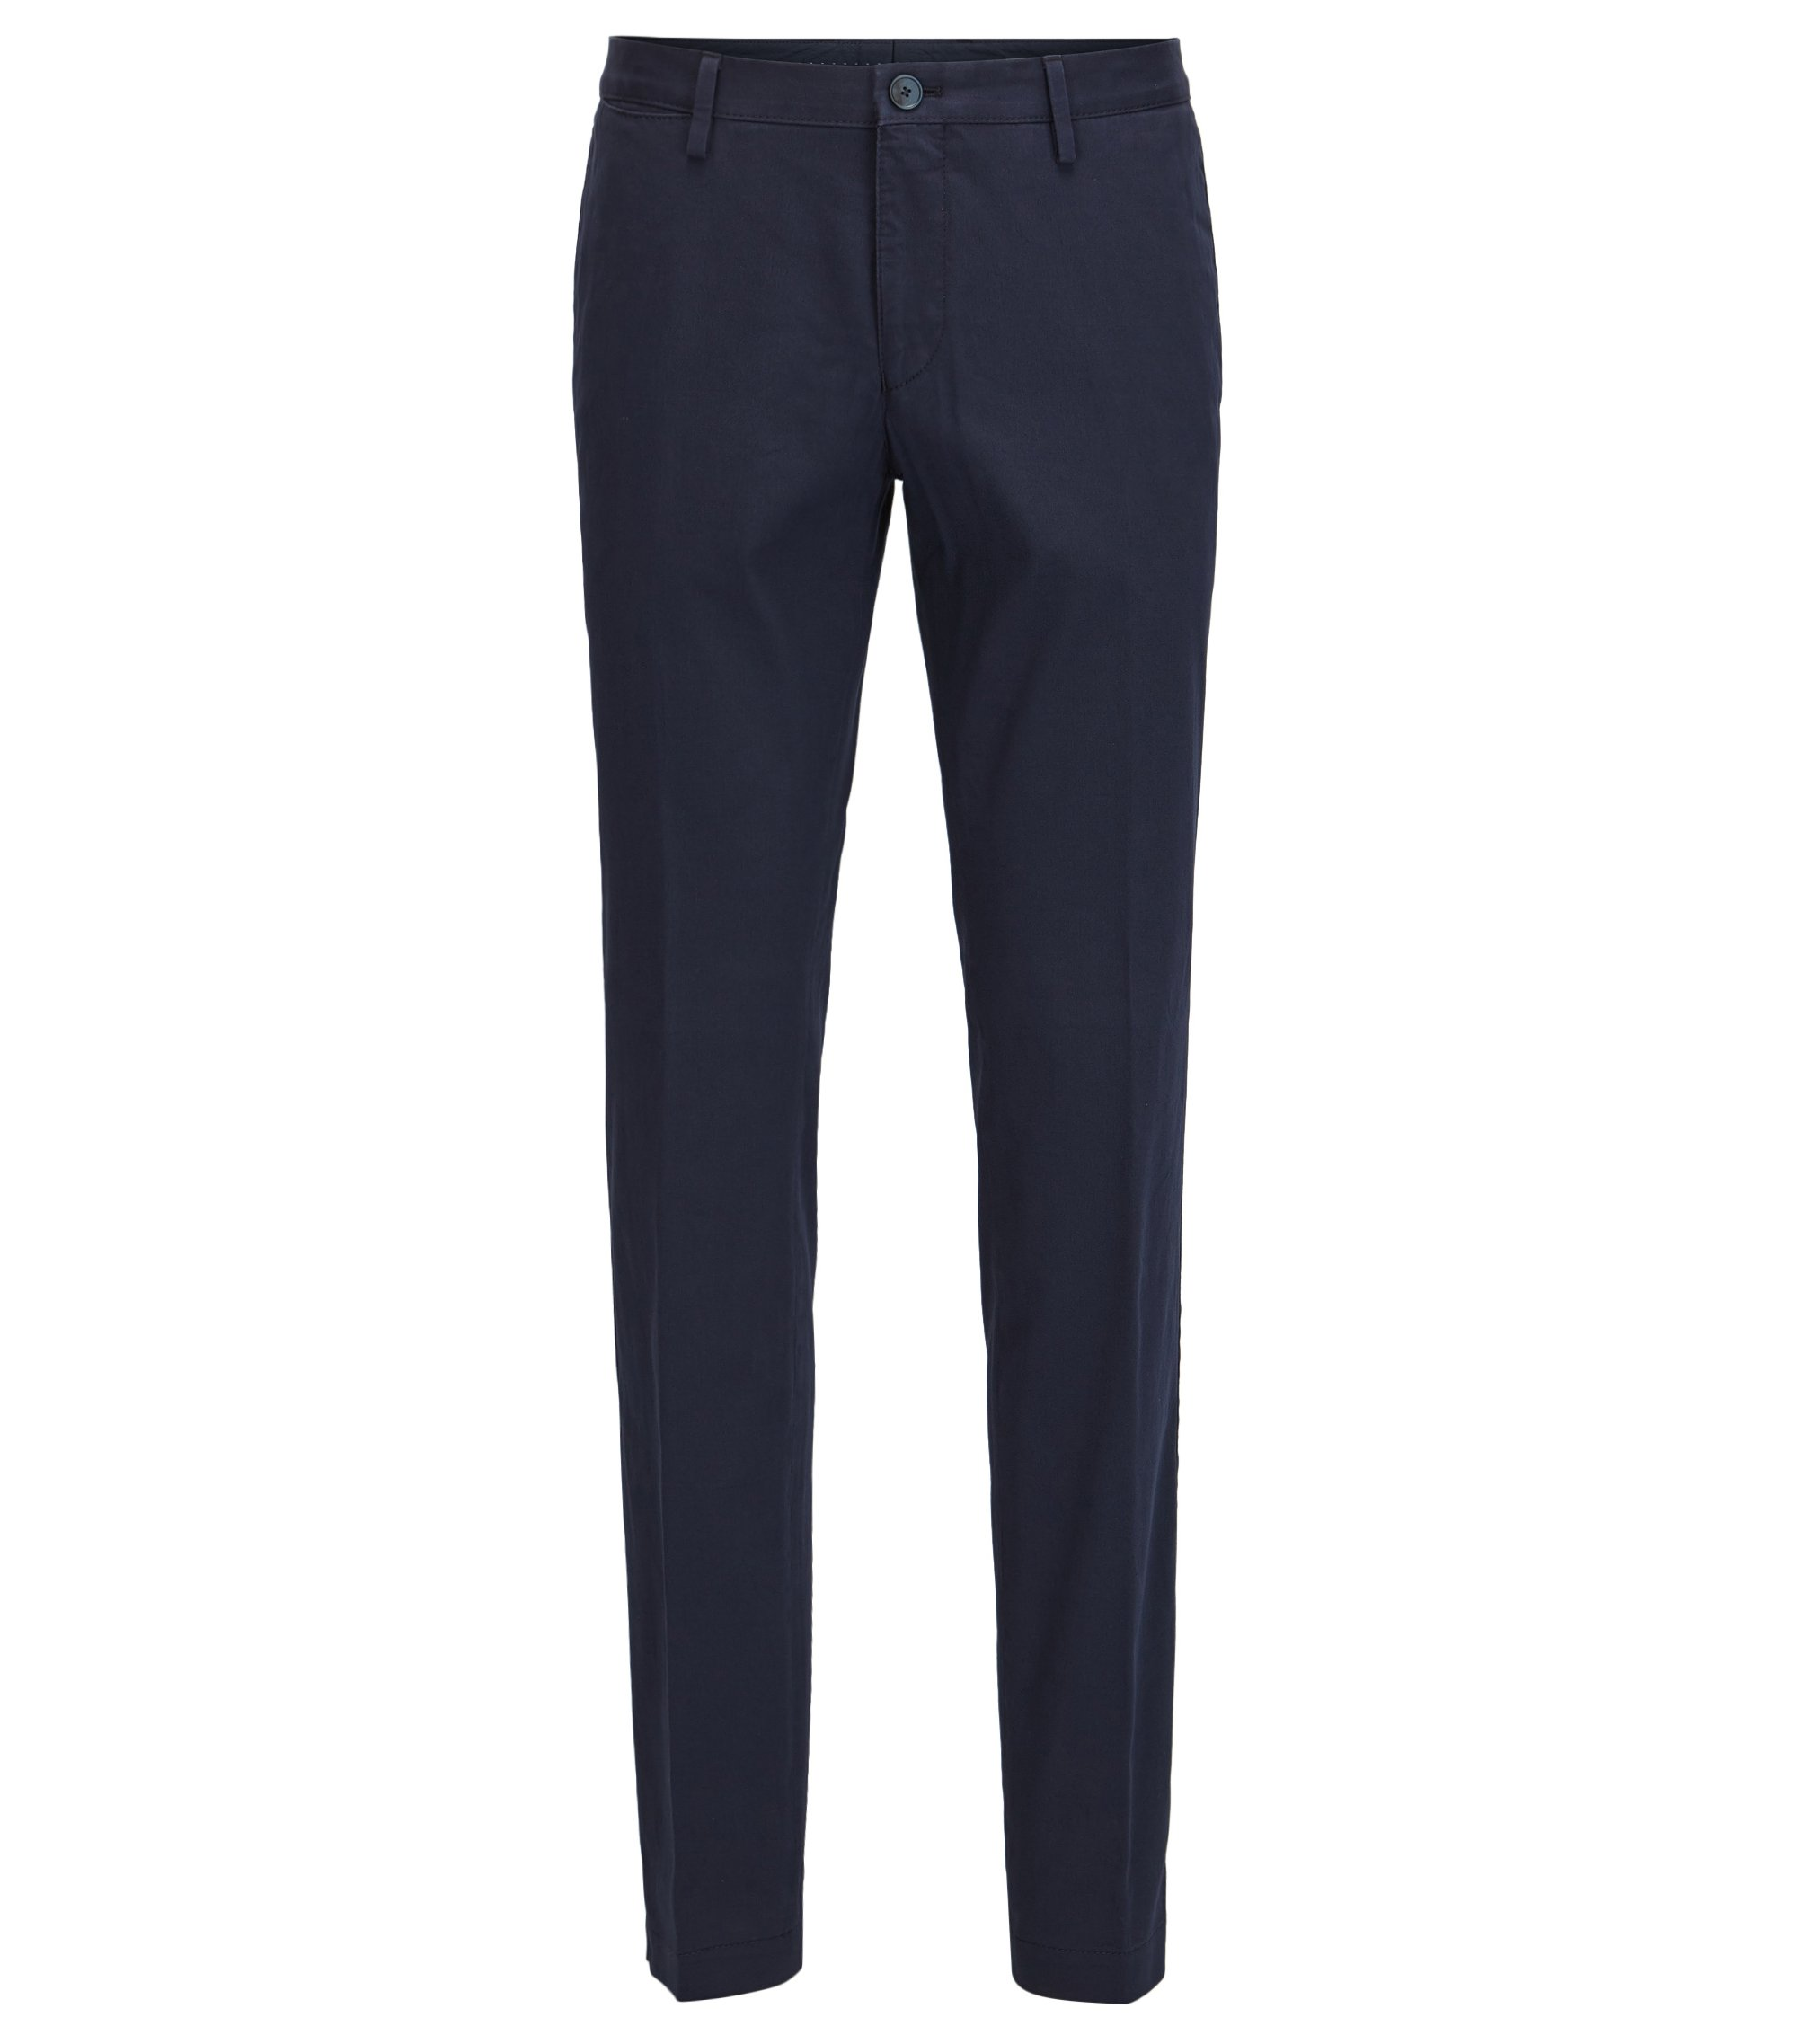 Stretch Cotton Pant, Slim Fit | Stanino W, Dark Blue